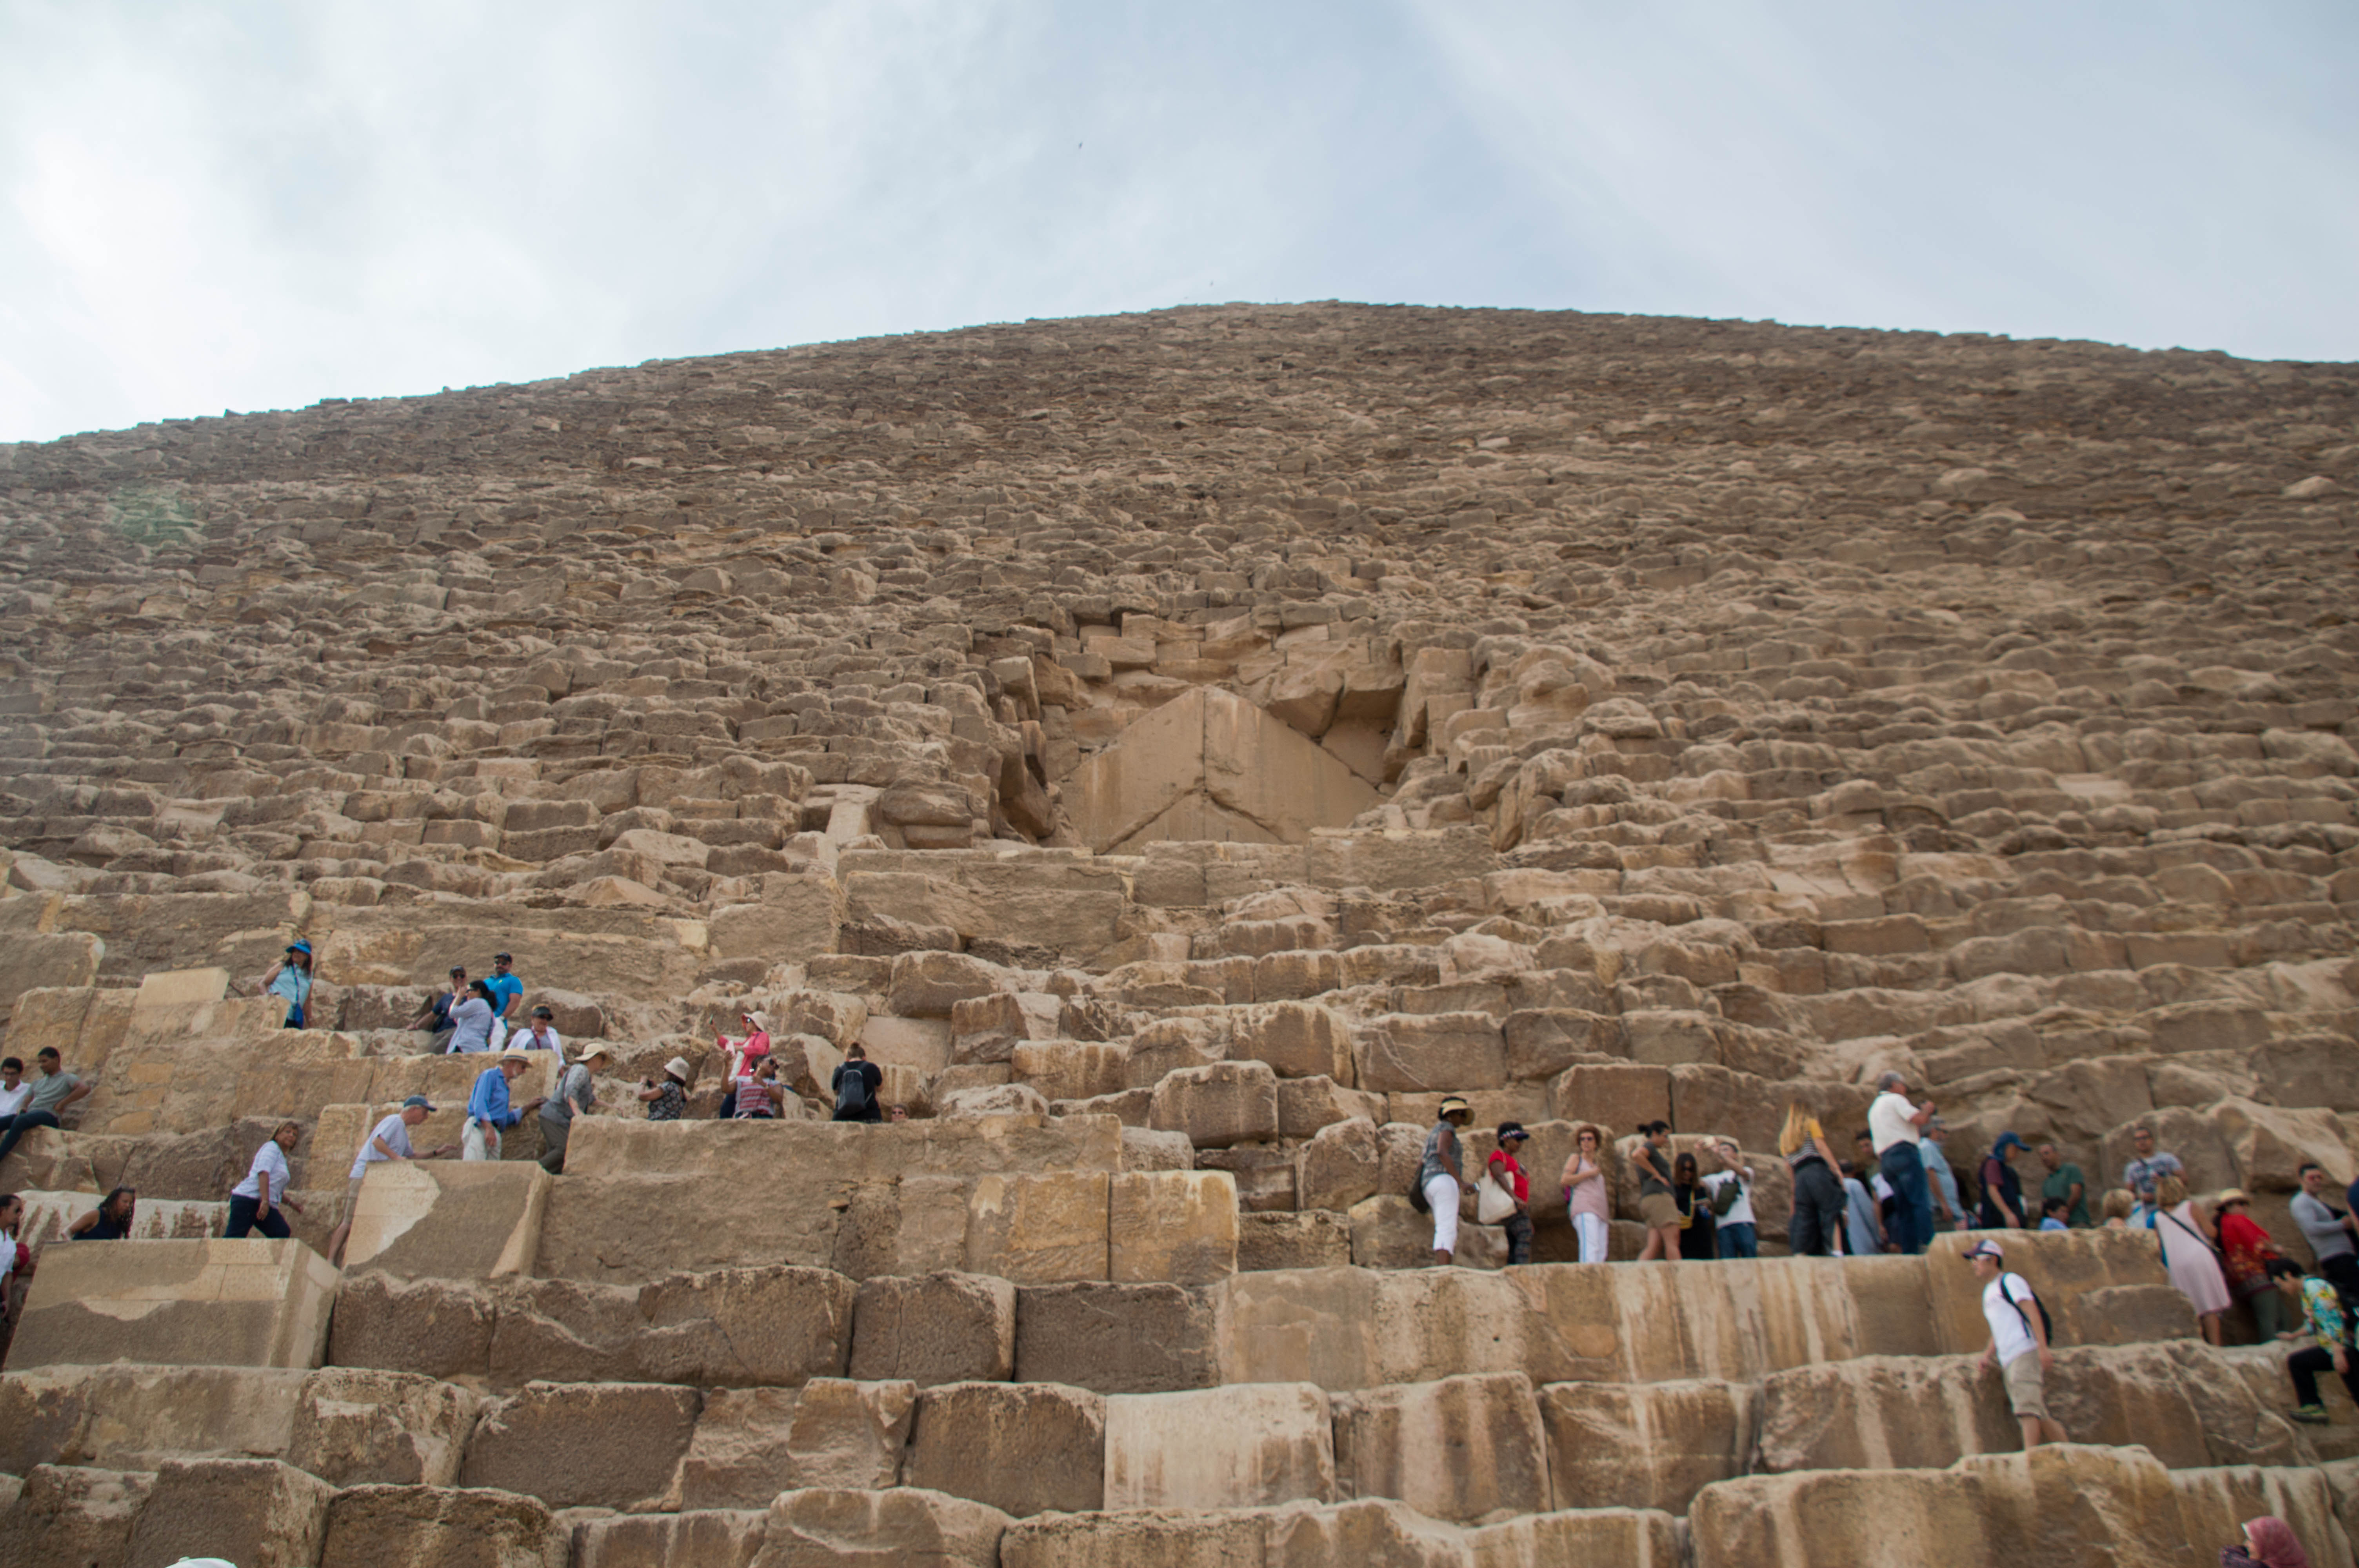 Looking Up At The Great Pyramid of Giza, Egypt